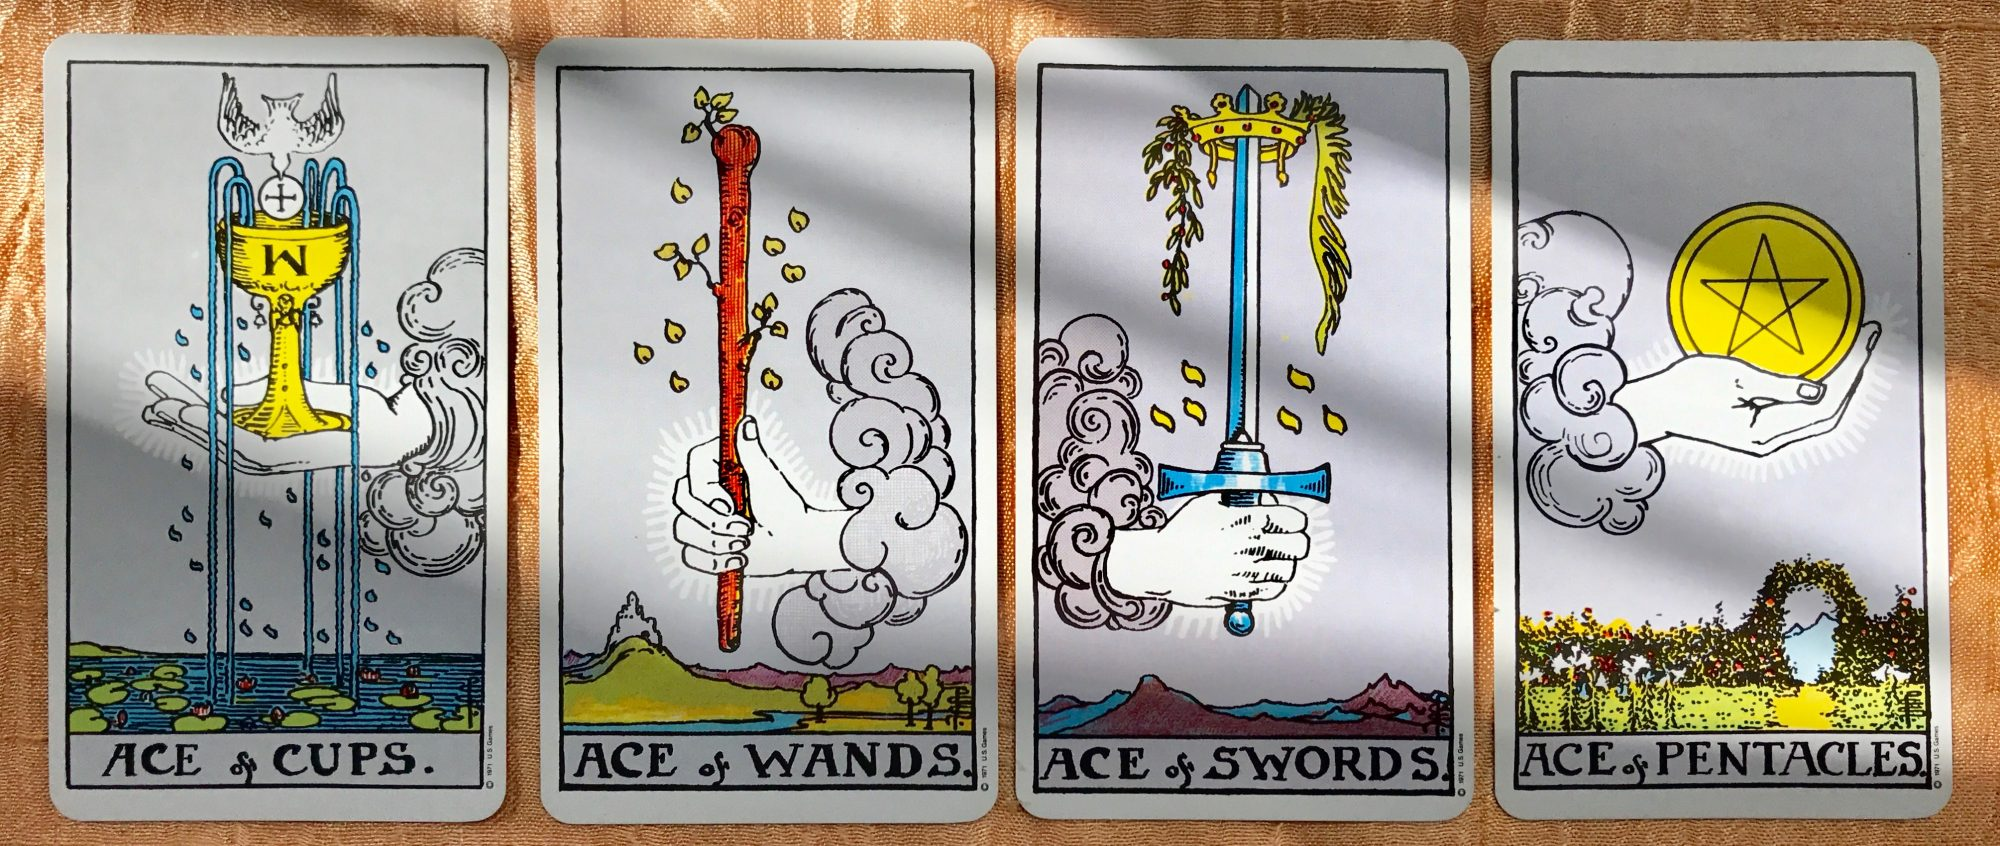 Ace of Tarot